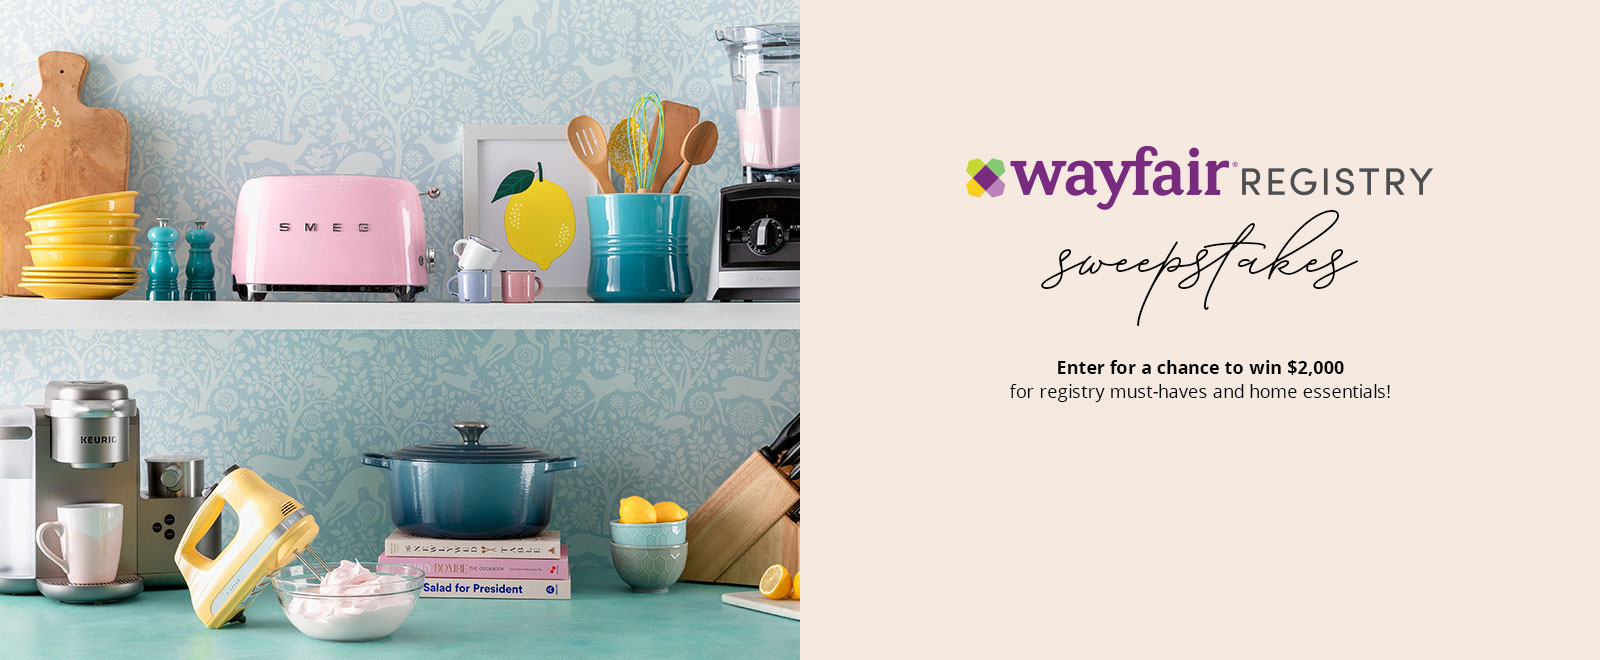 WAYFAIR REGISTRY - enter for a chance to win